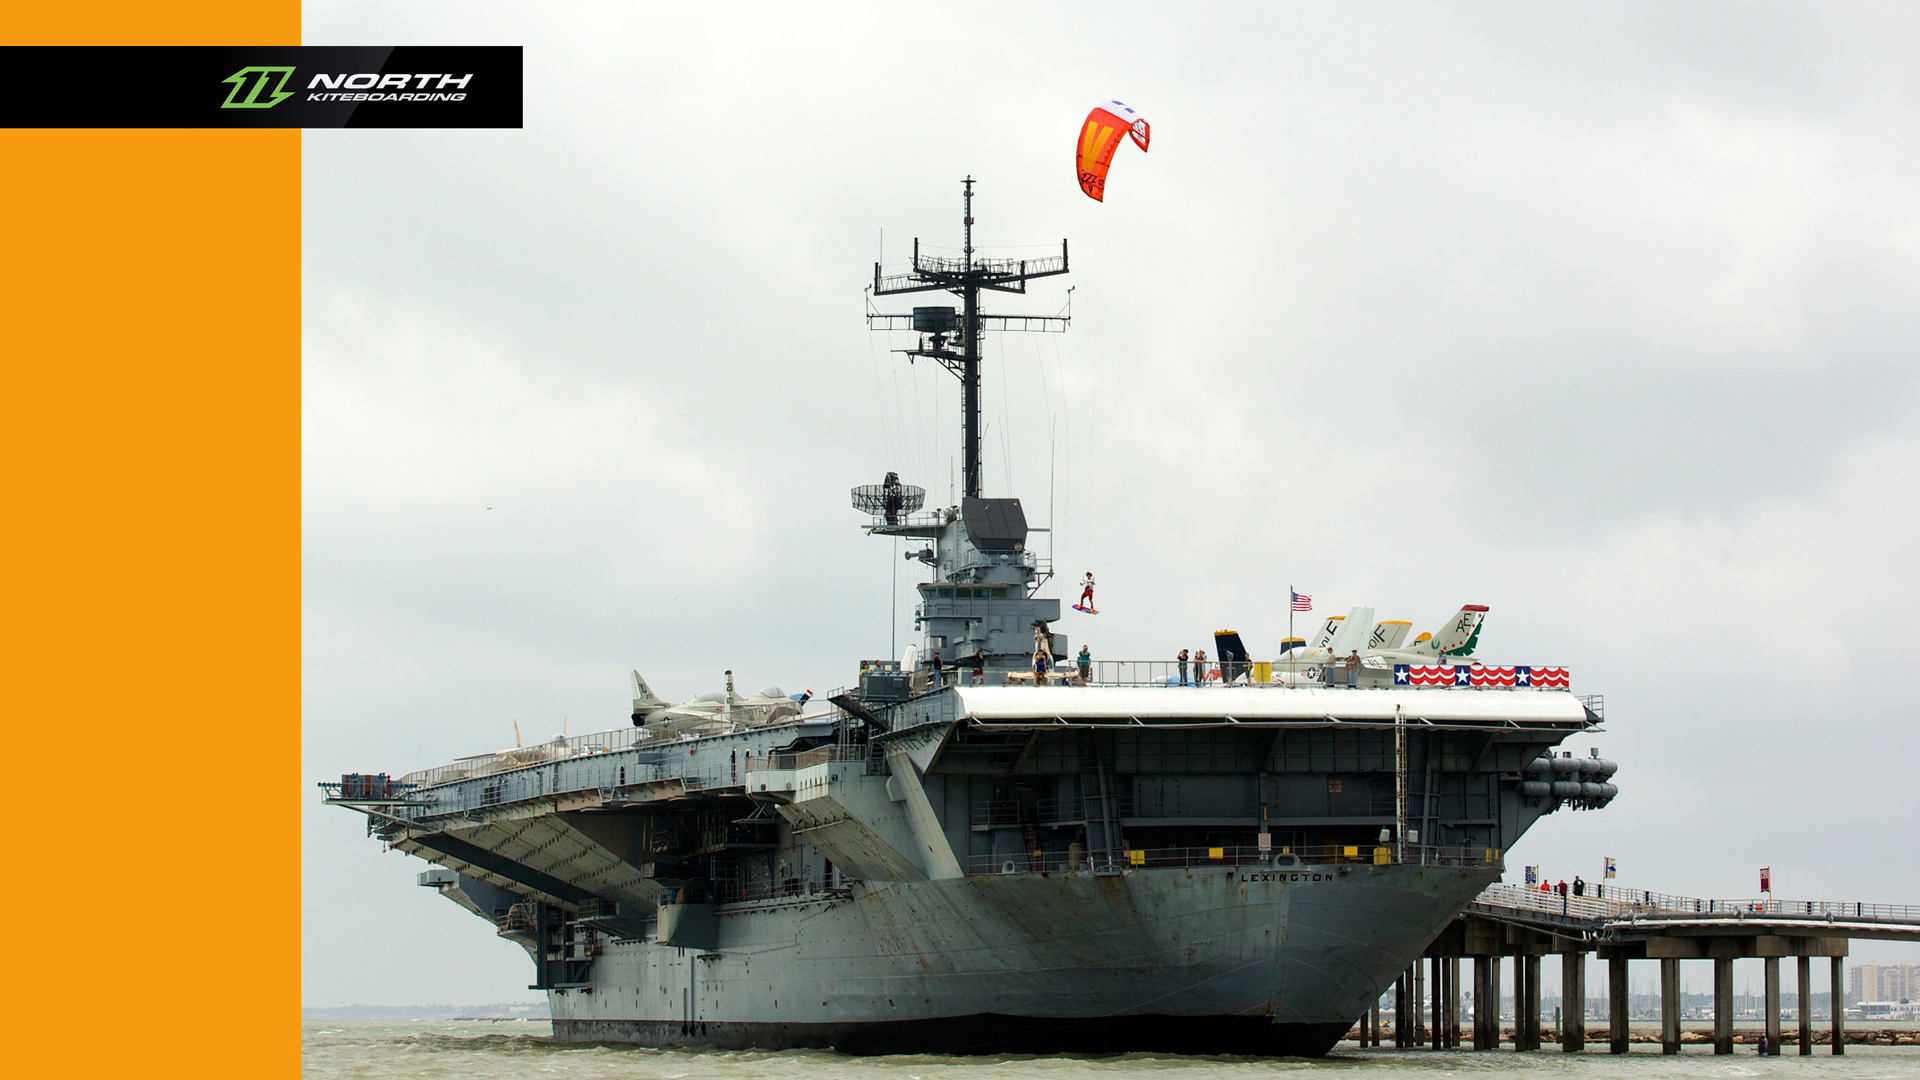 kitesurf wallpaper image - Jumping off an aircraft carrier with a North Vegas kite - in resolution: High Definition - HD 16:9 1920 X 1080